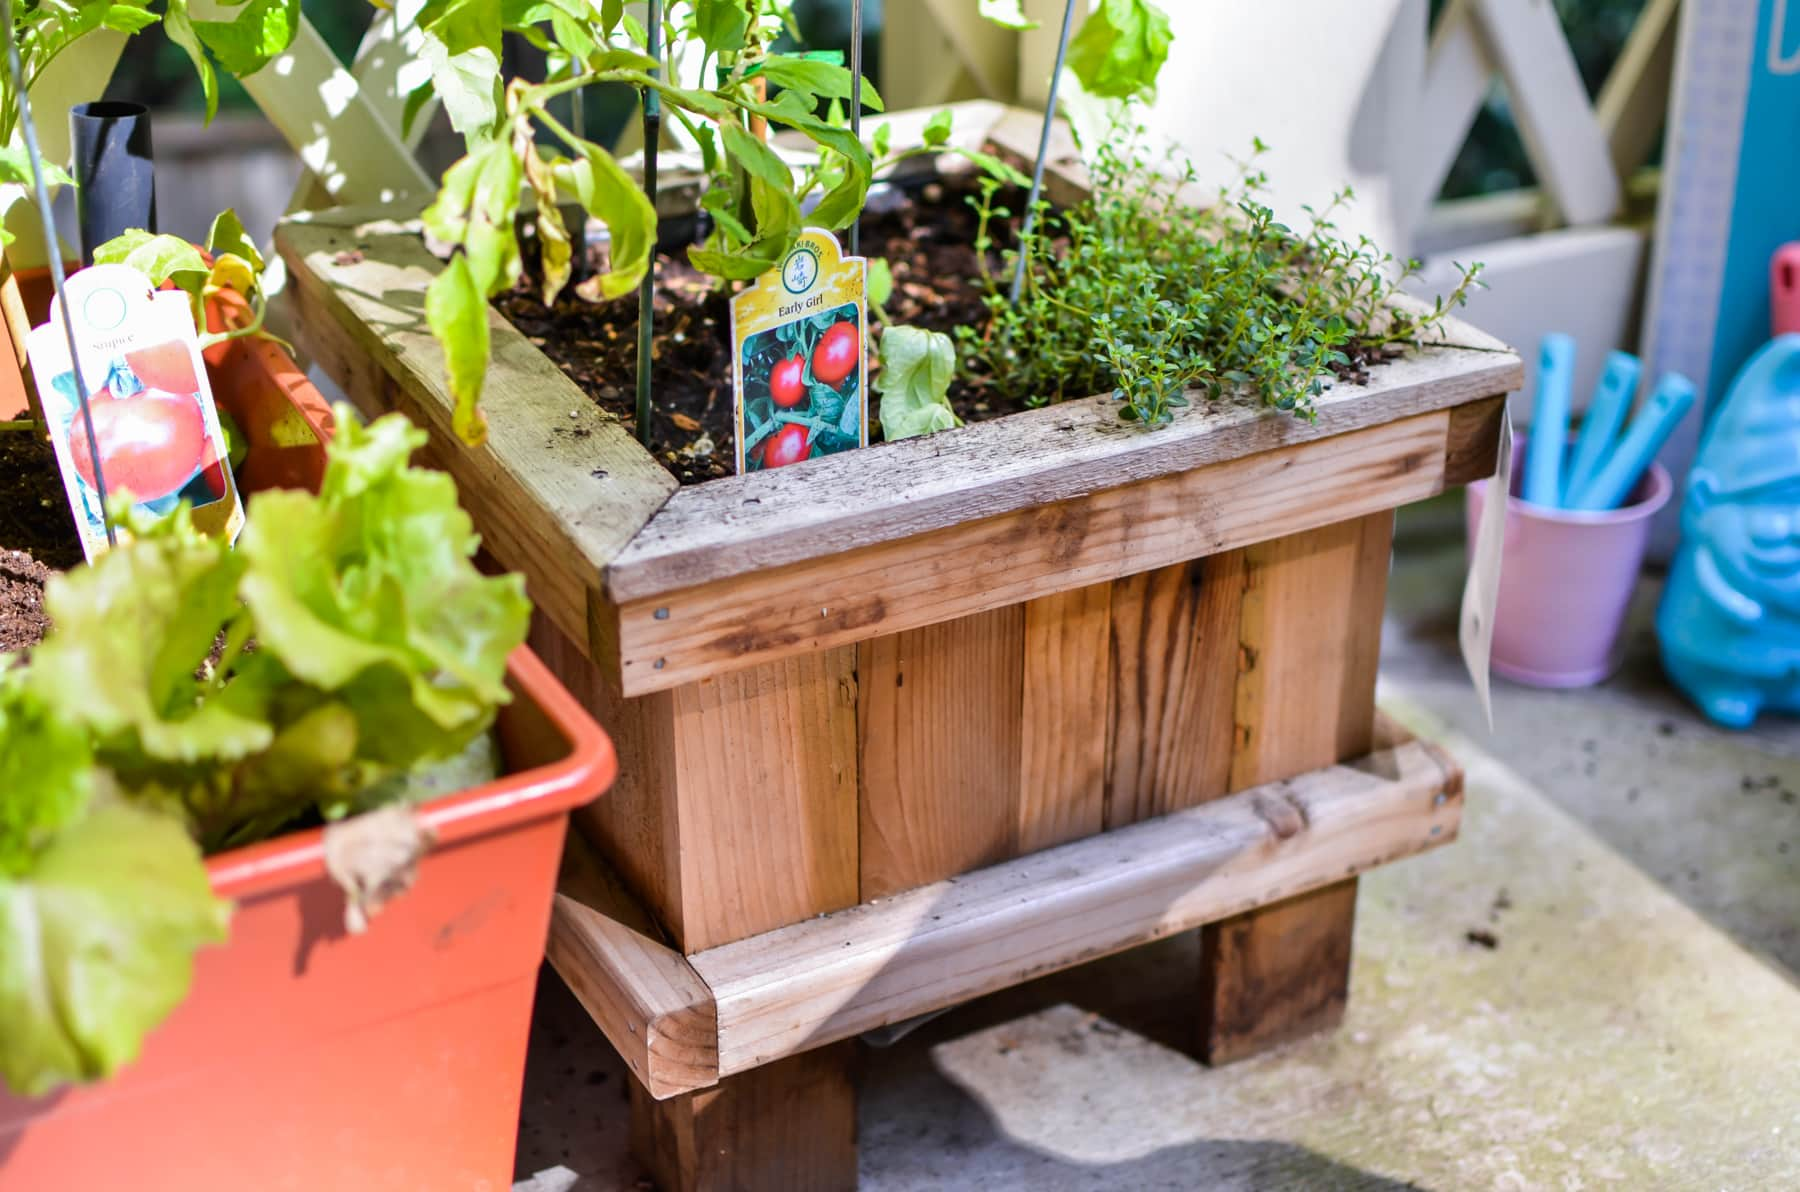 Small patio garden inspiration brought to you by mom for Small garden inspiration